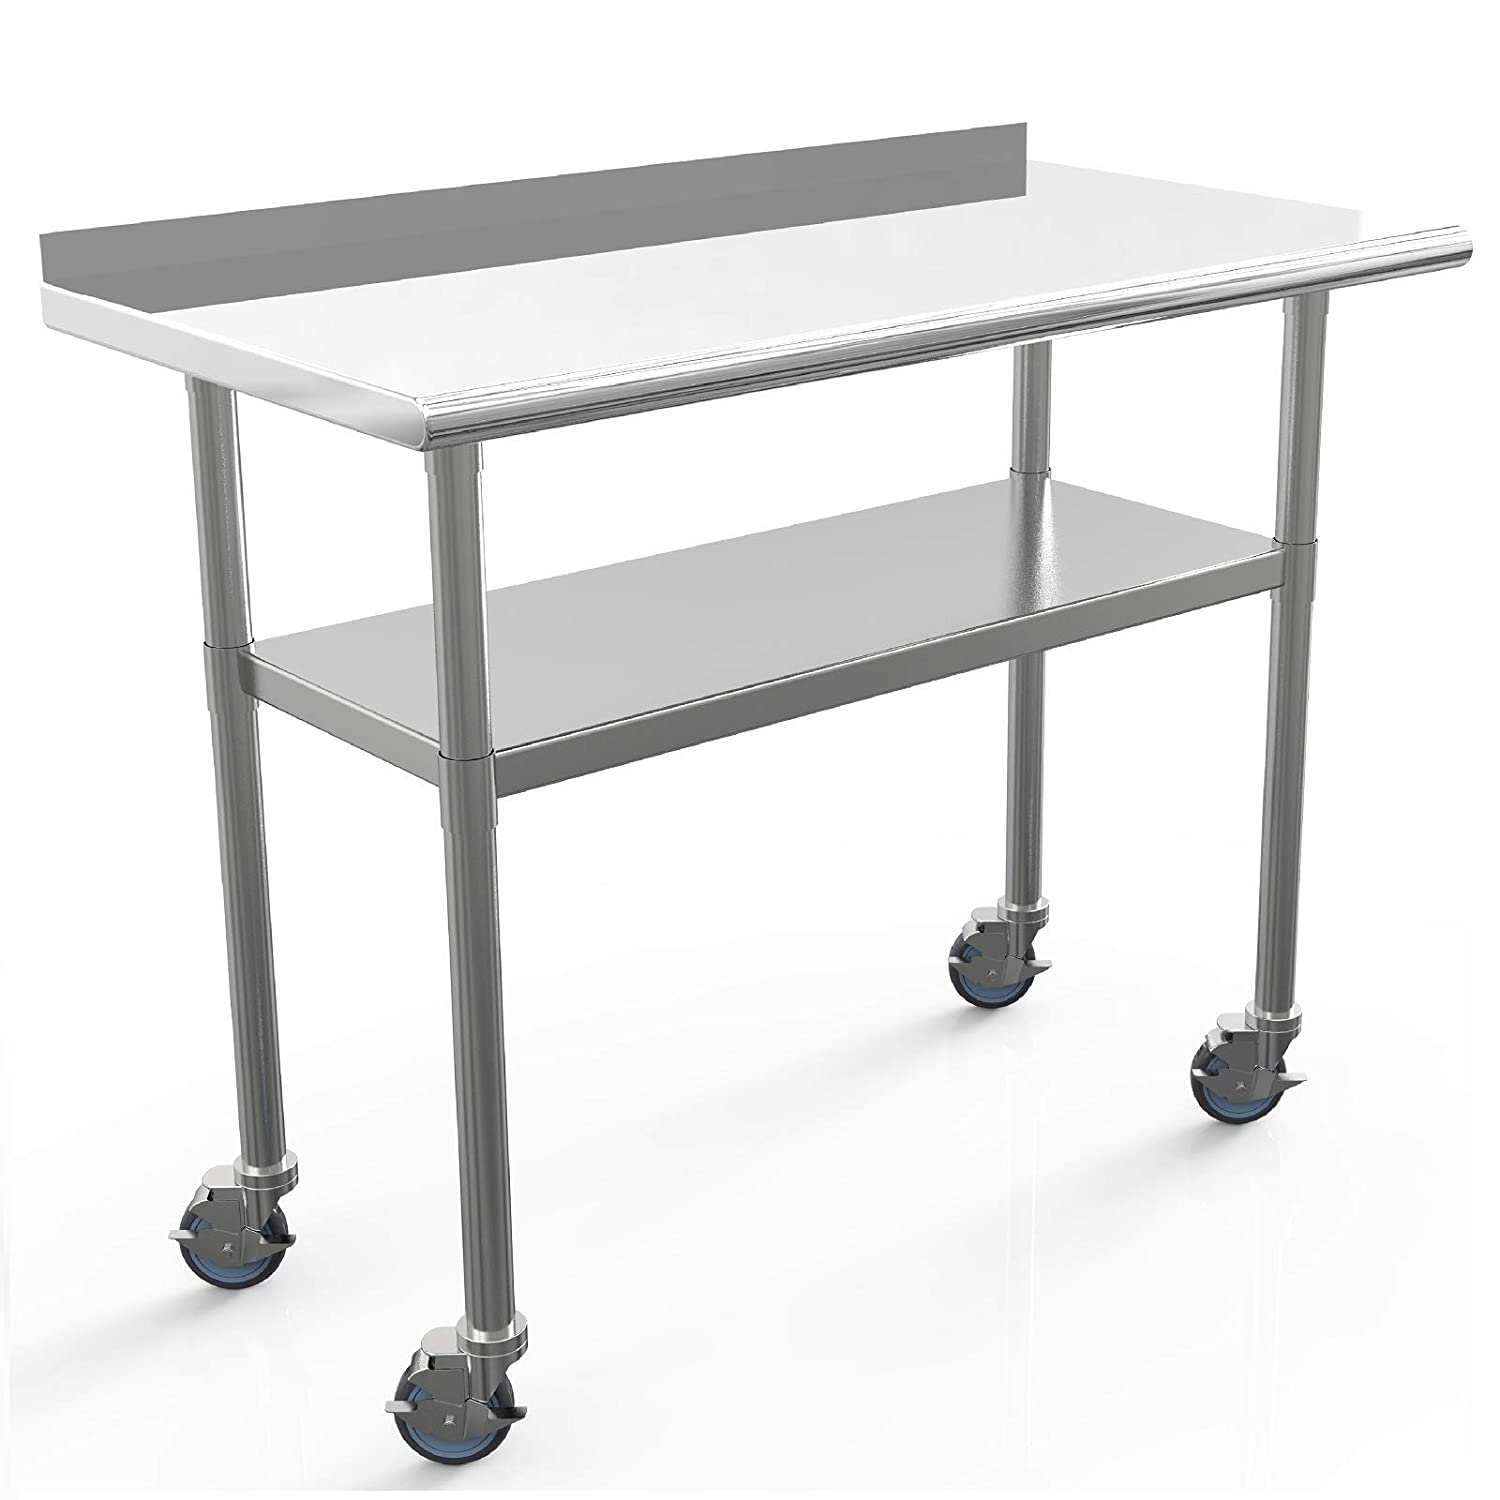 Commercial Work Table NSF Stainless Steel Table 48 x 24 Inches Heavy Duty Workbench Industrial Restaurant Food Work Tables for Shop Worktop with 1 1/2